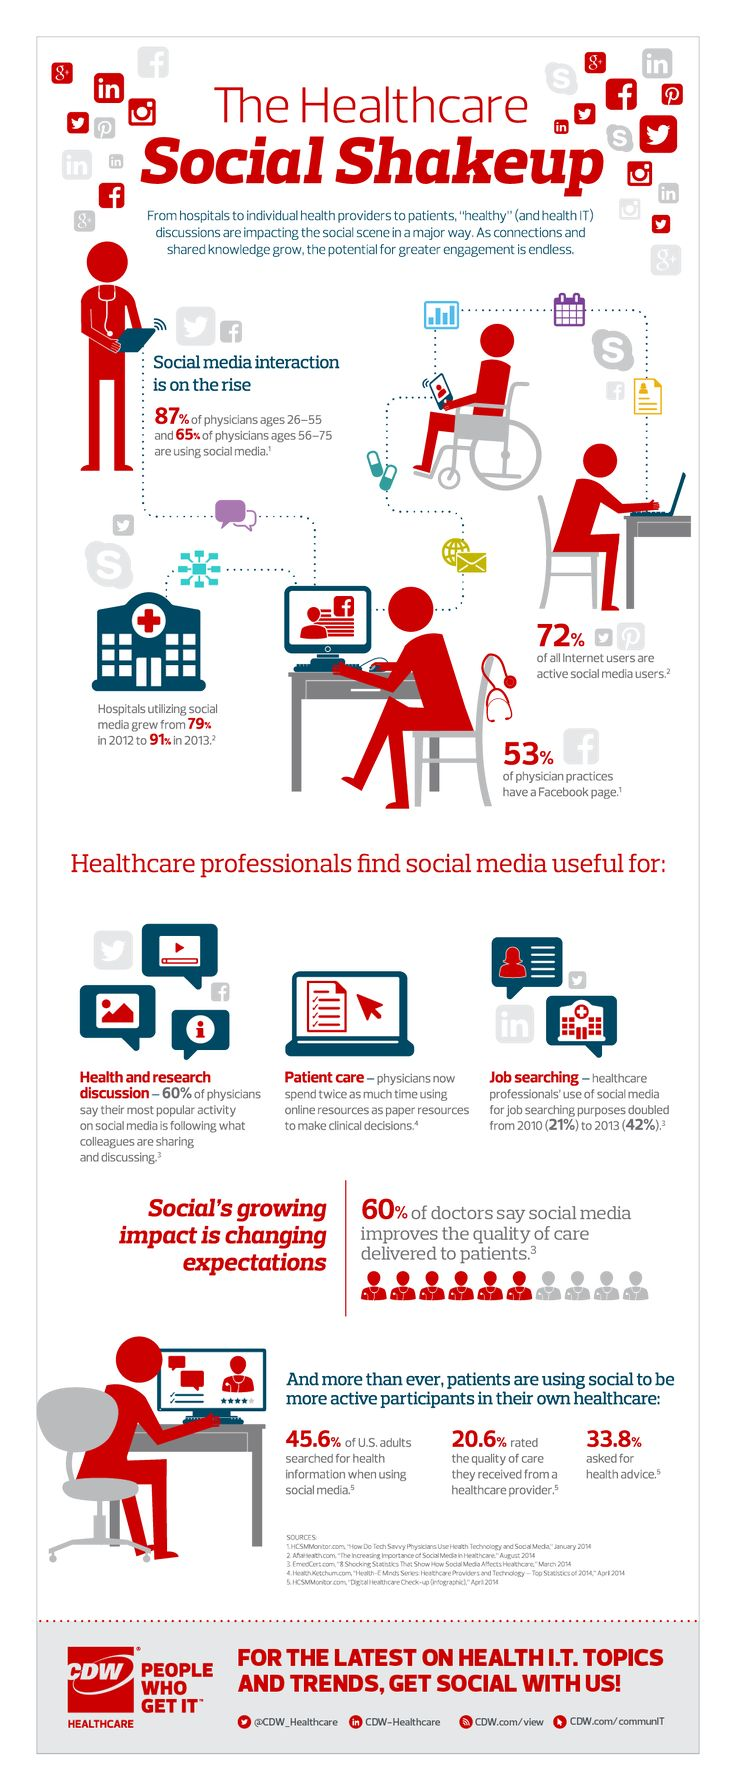 Hospitals, clinical practices and physicians of all ages are becoming more and more active on social media. And if we're talking about patients, you'll find this stat pretty revealing — 72% of all Internet users are active social media users. Why? To be better engaged and more active participants in their own healthcare. More from CDW Healthcare, CDW.com/view.